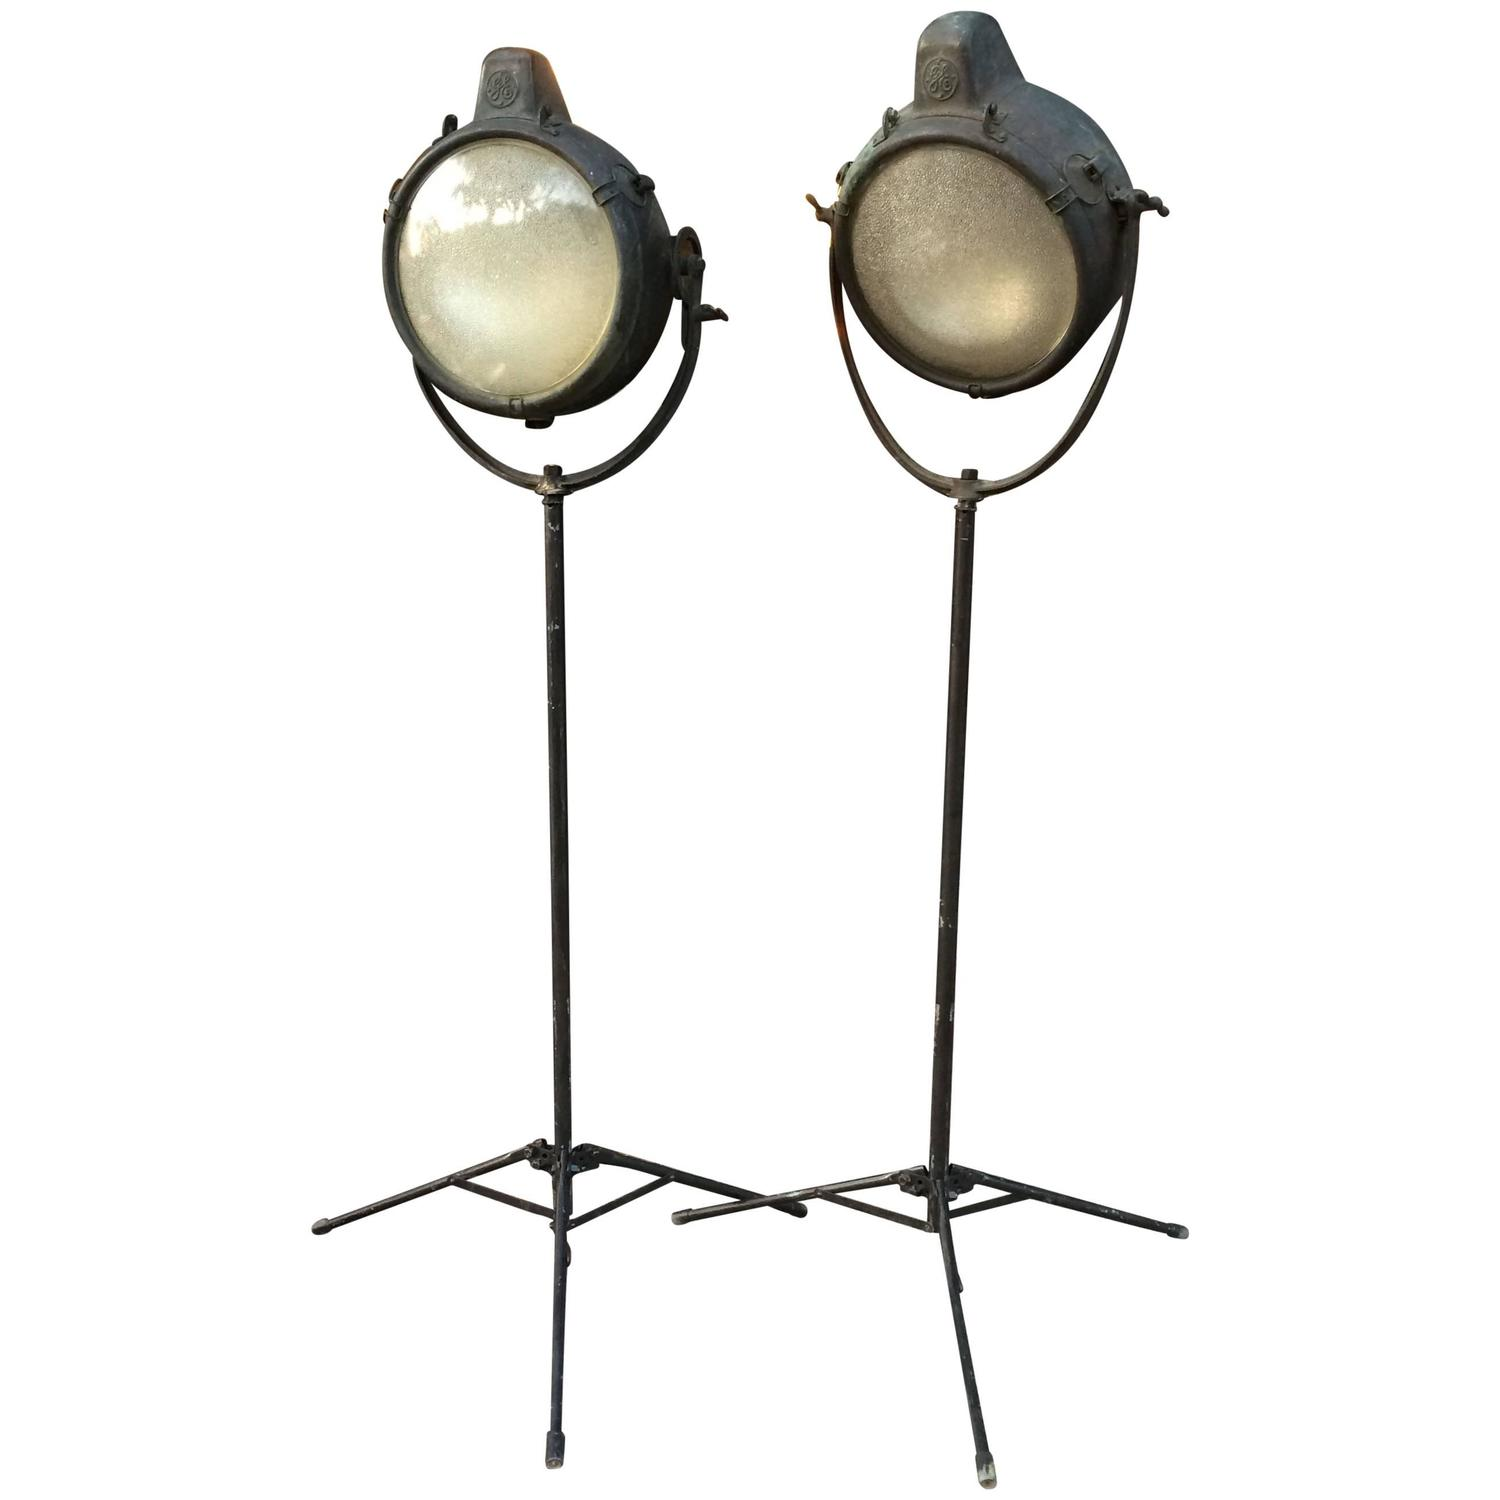 Industrial GE Copper Search Light Floor Lamp For Sale at 1stdibs